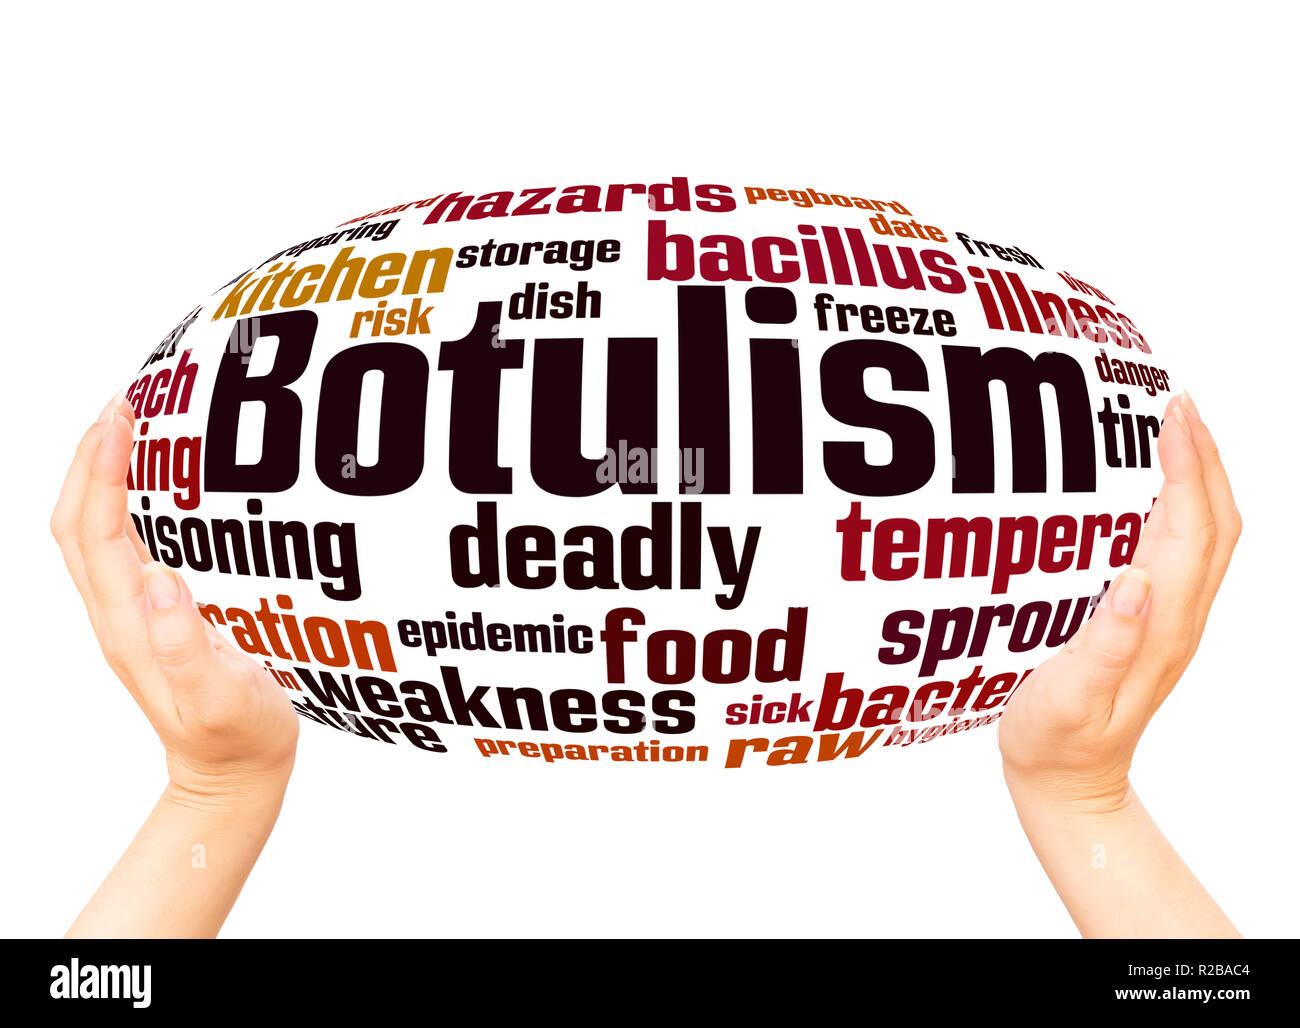 Botulism word cloud hand sphere concept on white background. - Stock Image